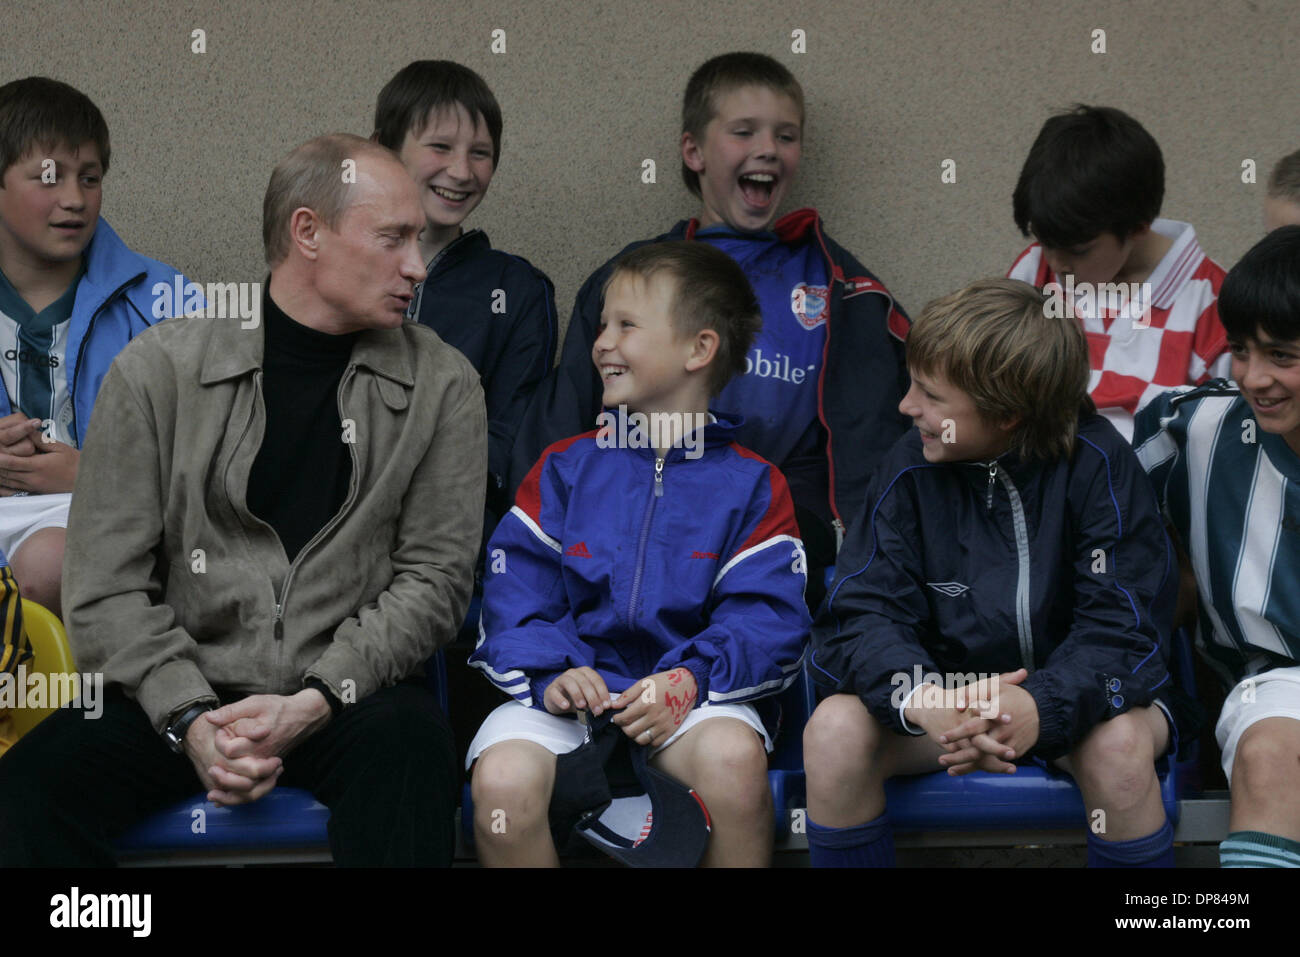 Vladimir Putin With Russian Kids Credit Image C Photoxpress Zuma Stock Photo Alamy